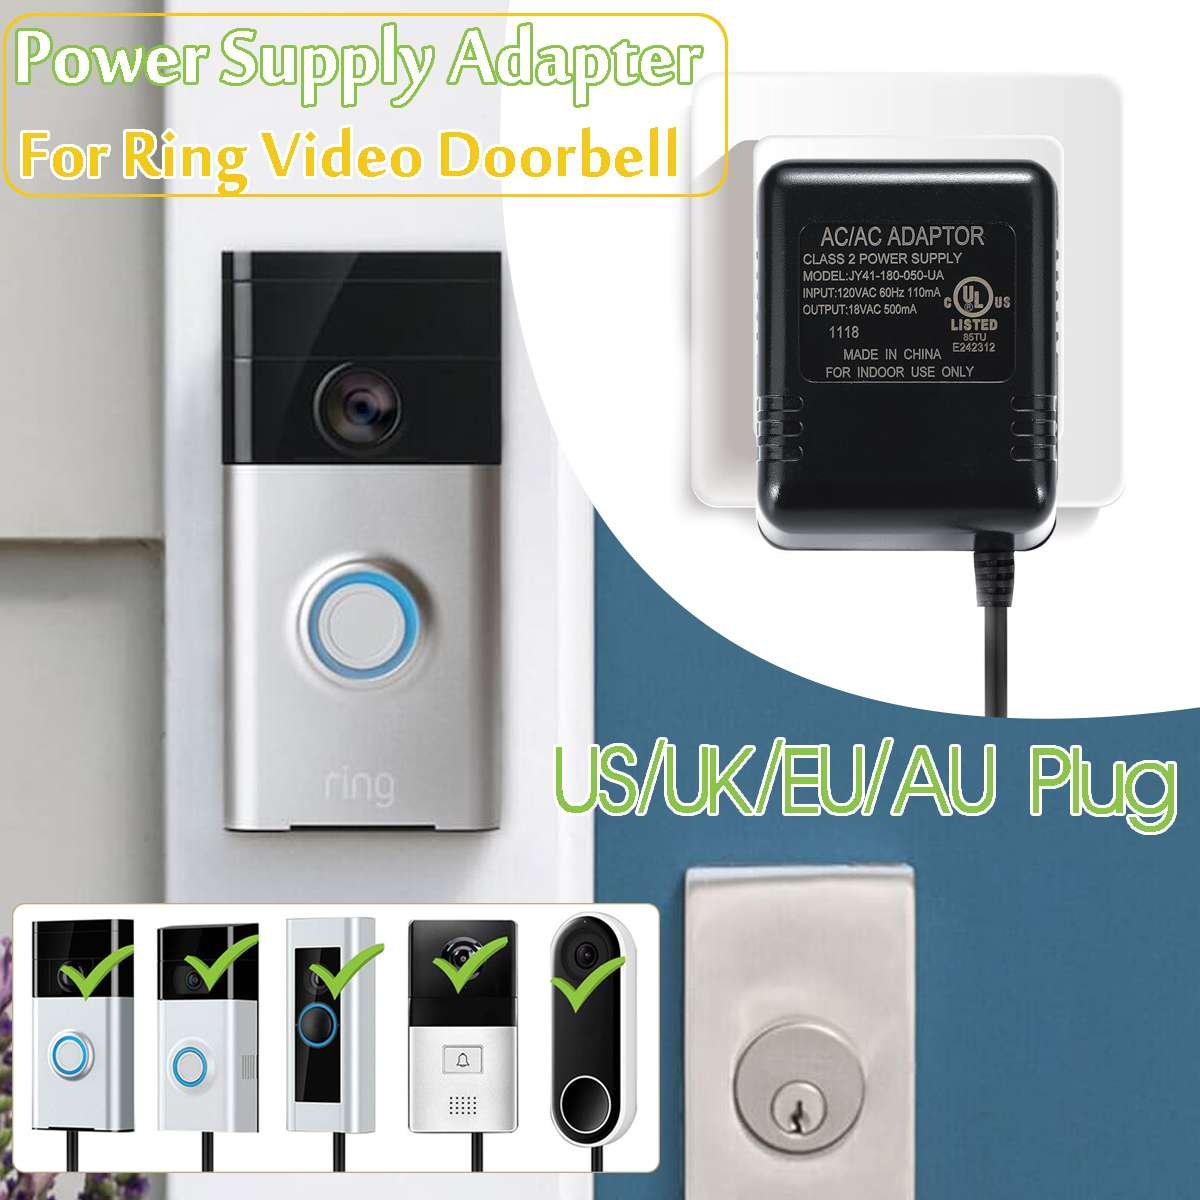 US/UK/EU/AU 8M Wifi Doorbell Camera  Adapter For IP Video Intercom Ring Wireless Doorbell 110V-240V AC 18V Transformer